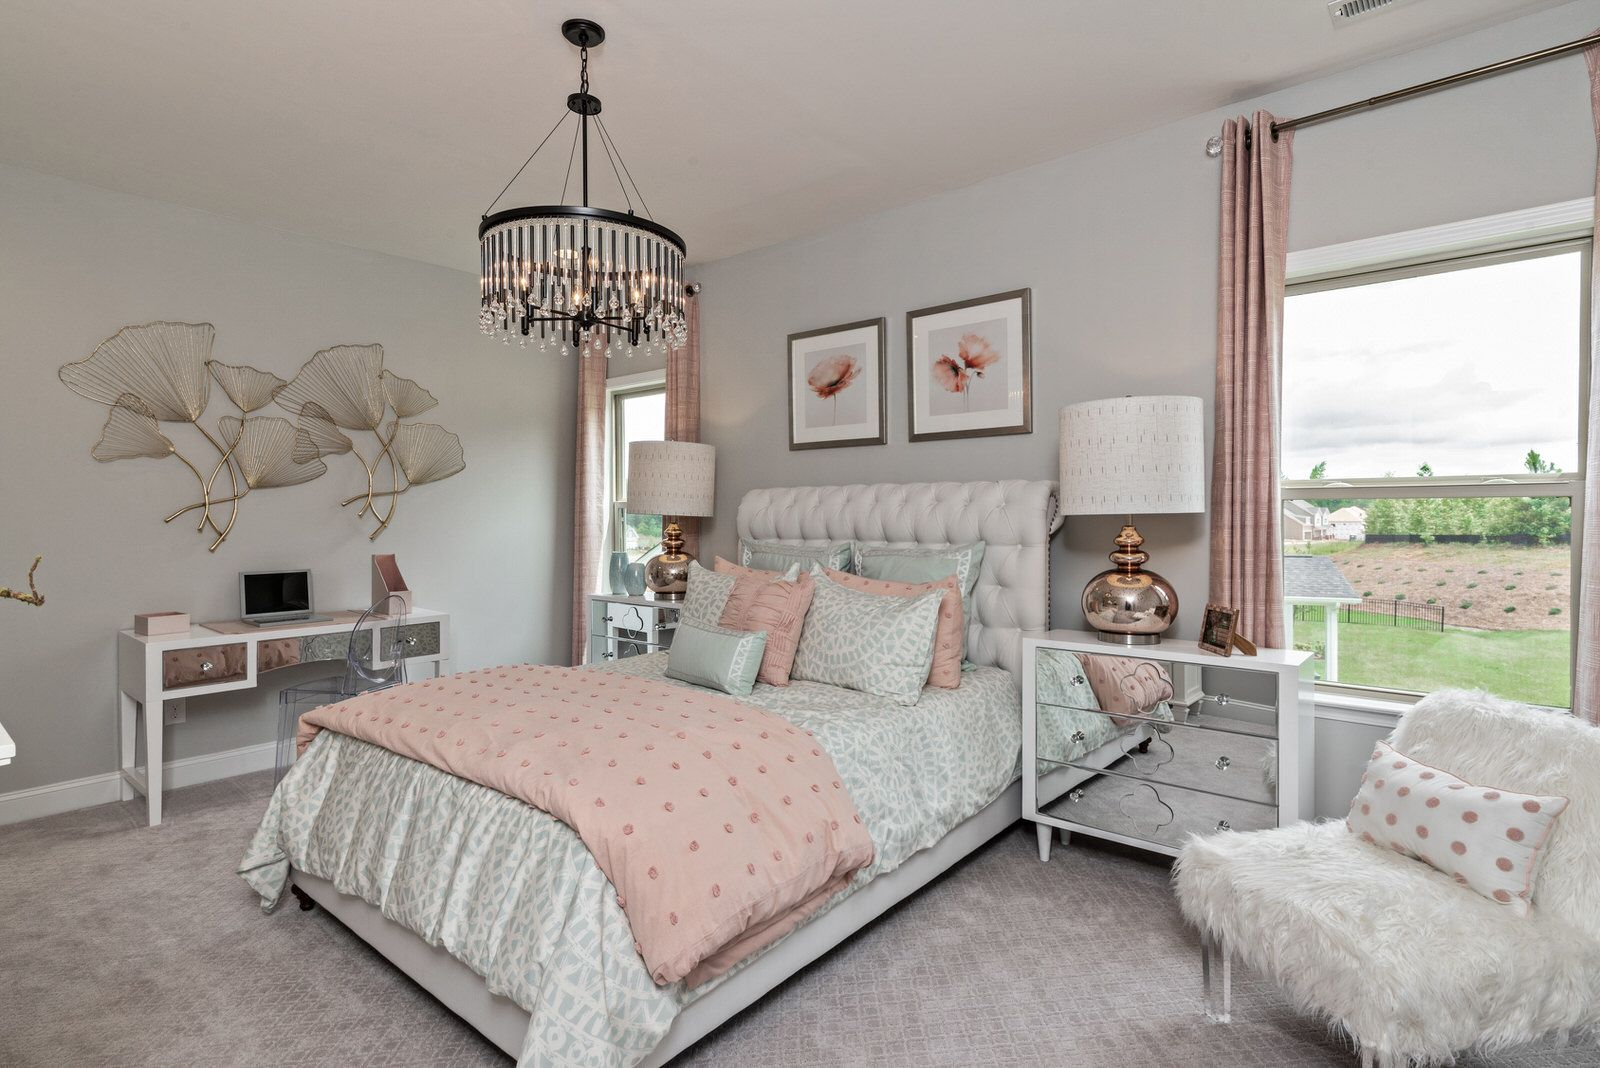 Bedroom featured in the Pikewood By Taylor Morrison in Charlotte, NC